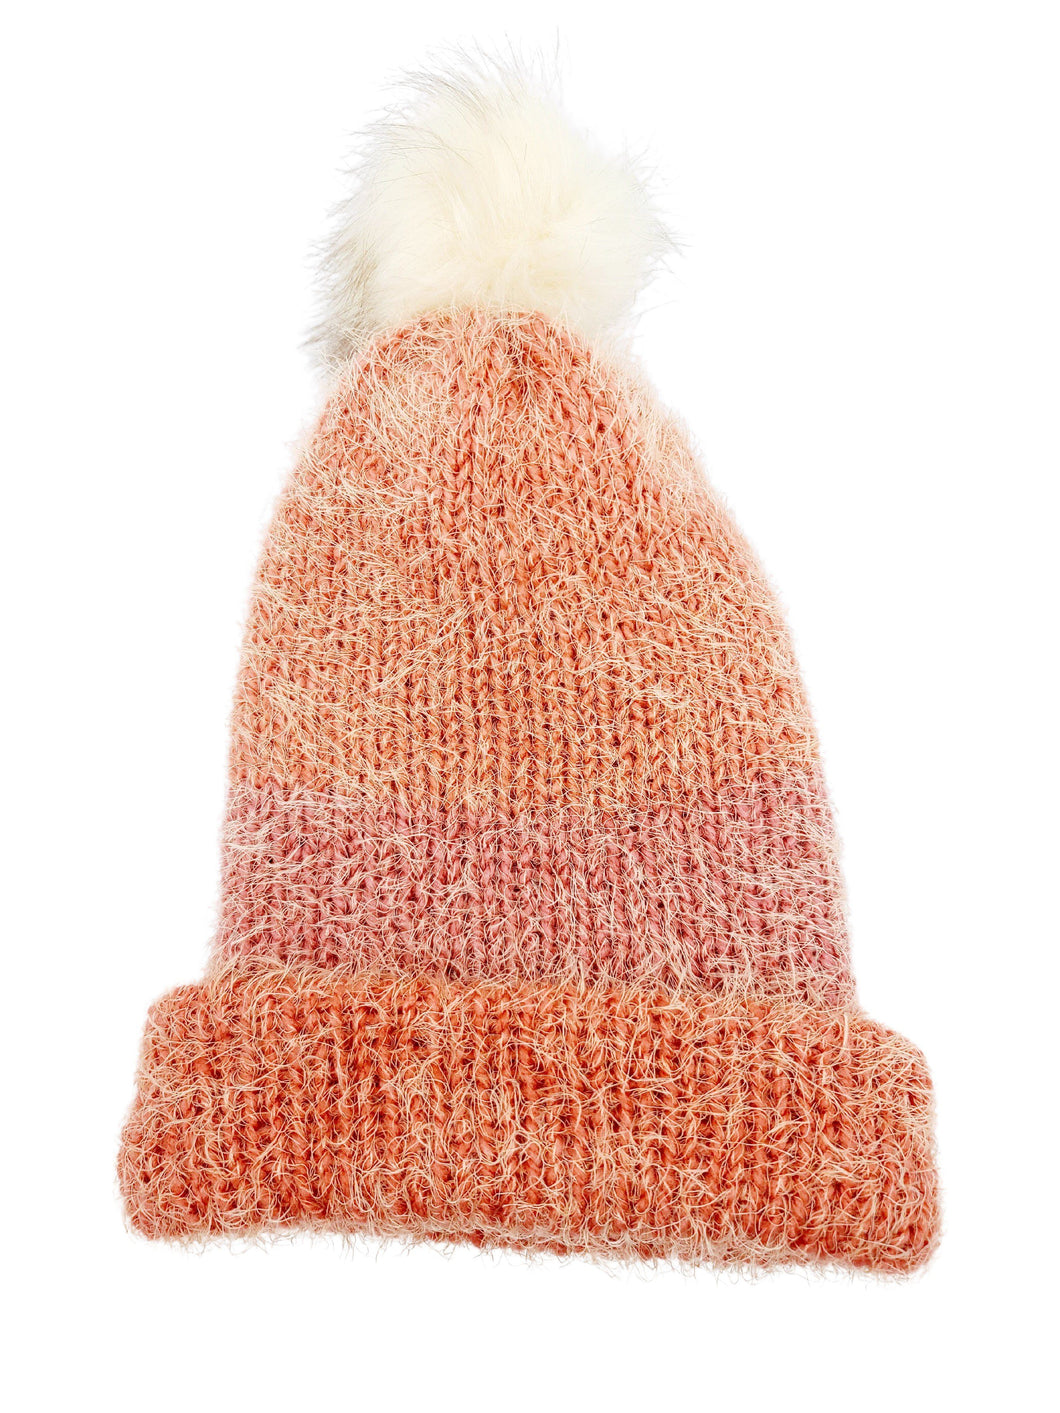 Beanie Hand Knit Hat- Pumpkin Pie Softie Luckyknitsshop